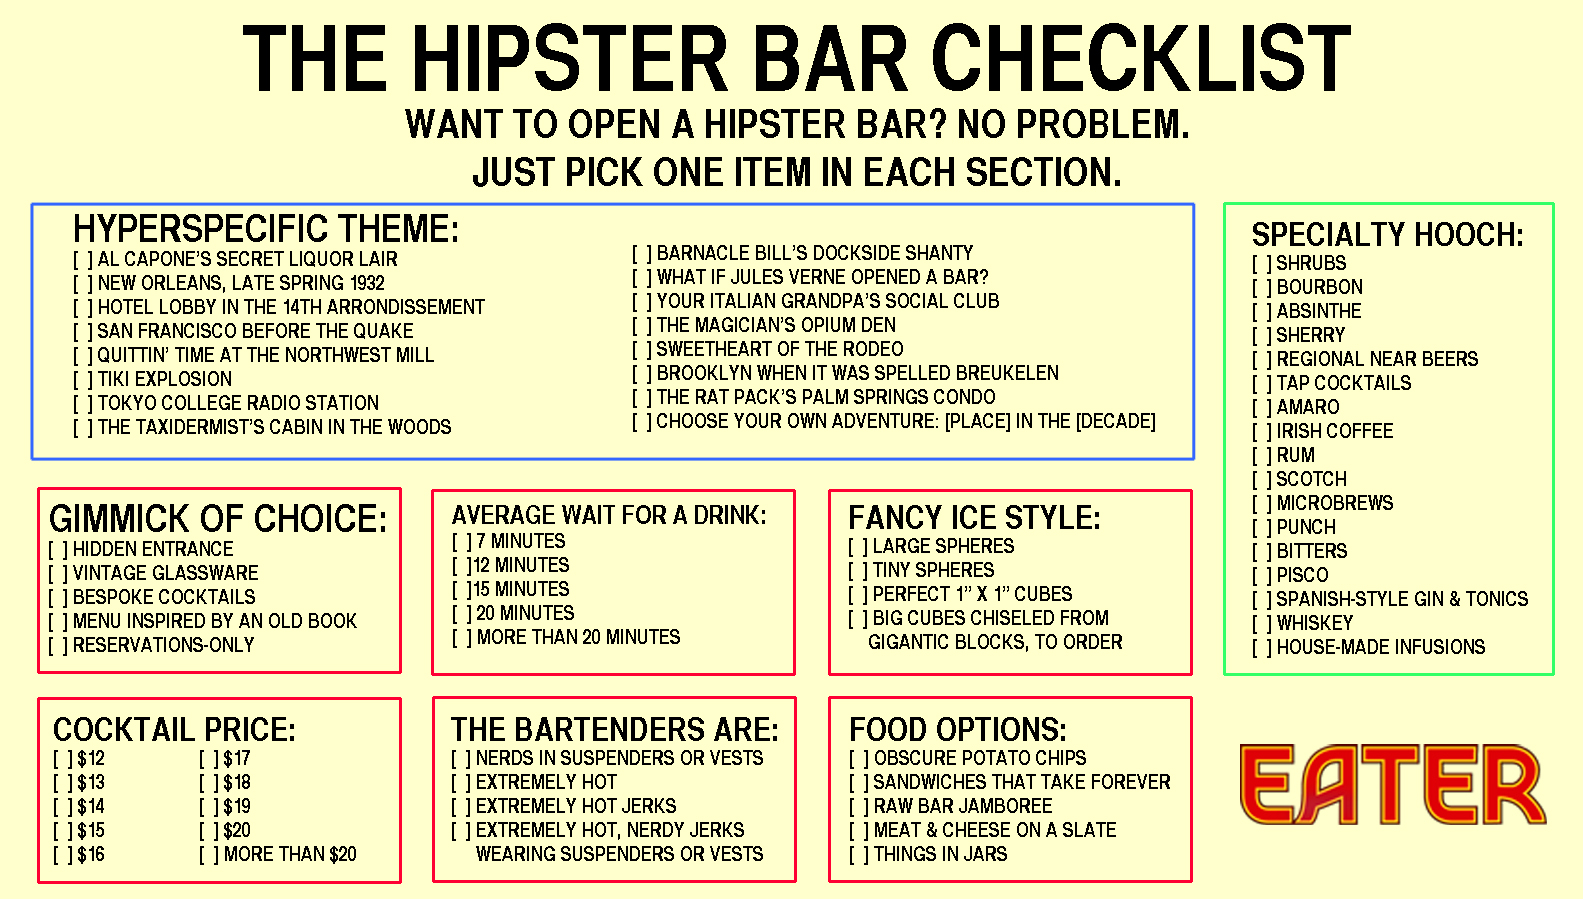 House cleaning checklist in spanish - A Checklist To Owning A Hipster Bar Designtaxi